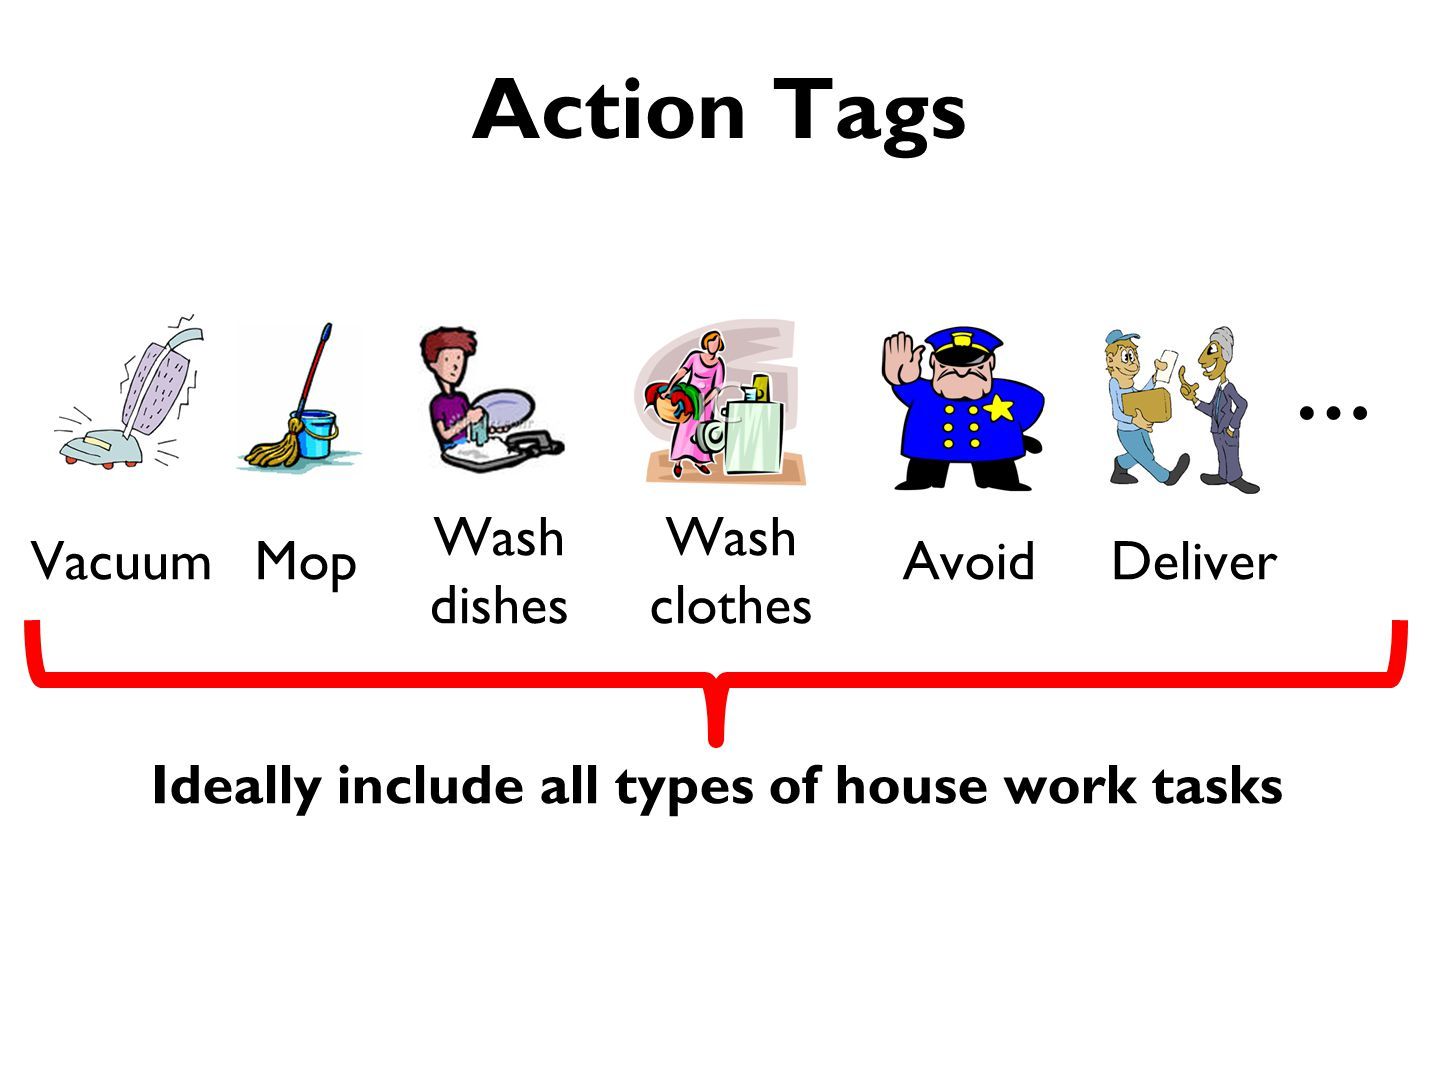 Action Tags VacuumMopDeliver Wash dishes Wash clothes Avoid … Ideally include all types of house work tasks